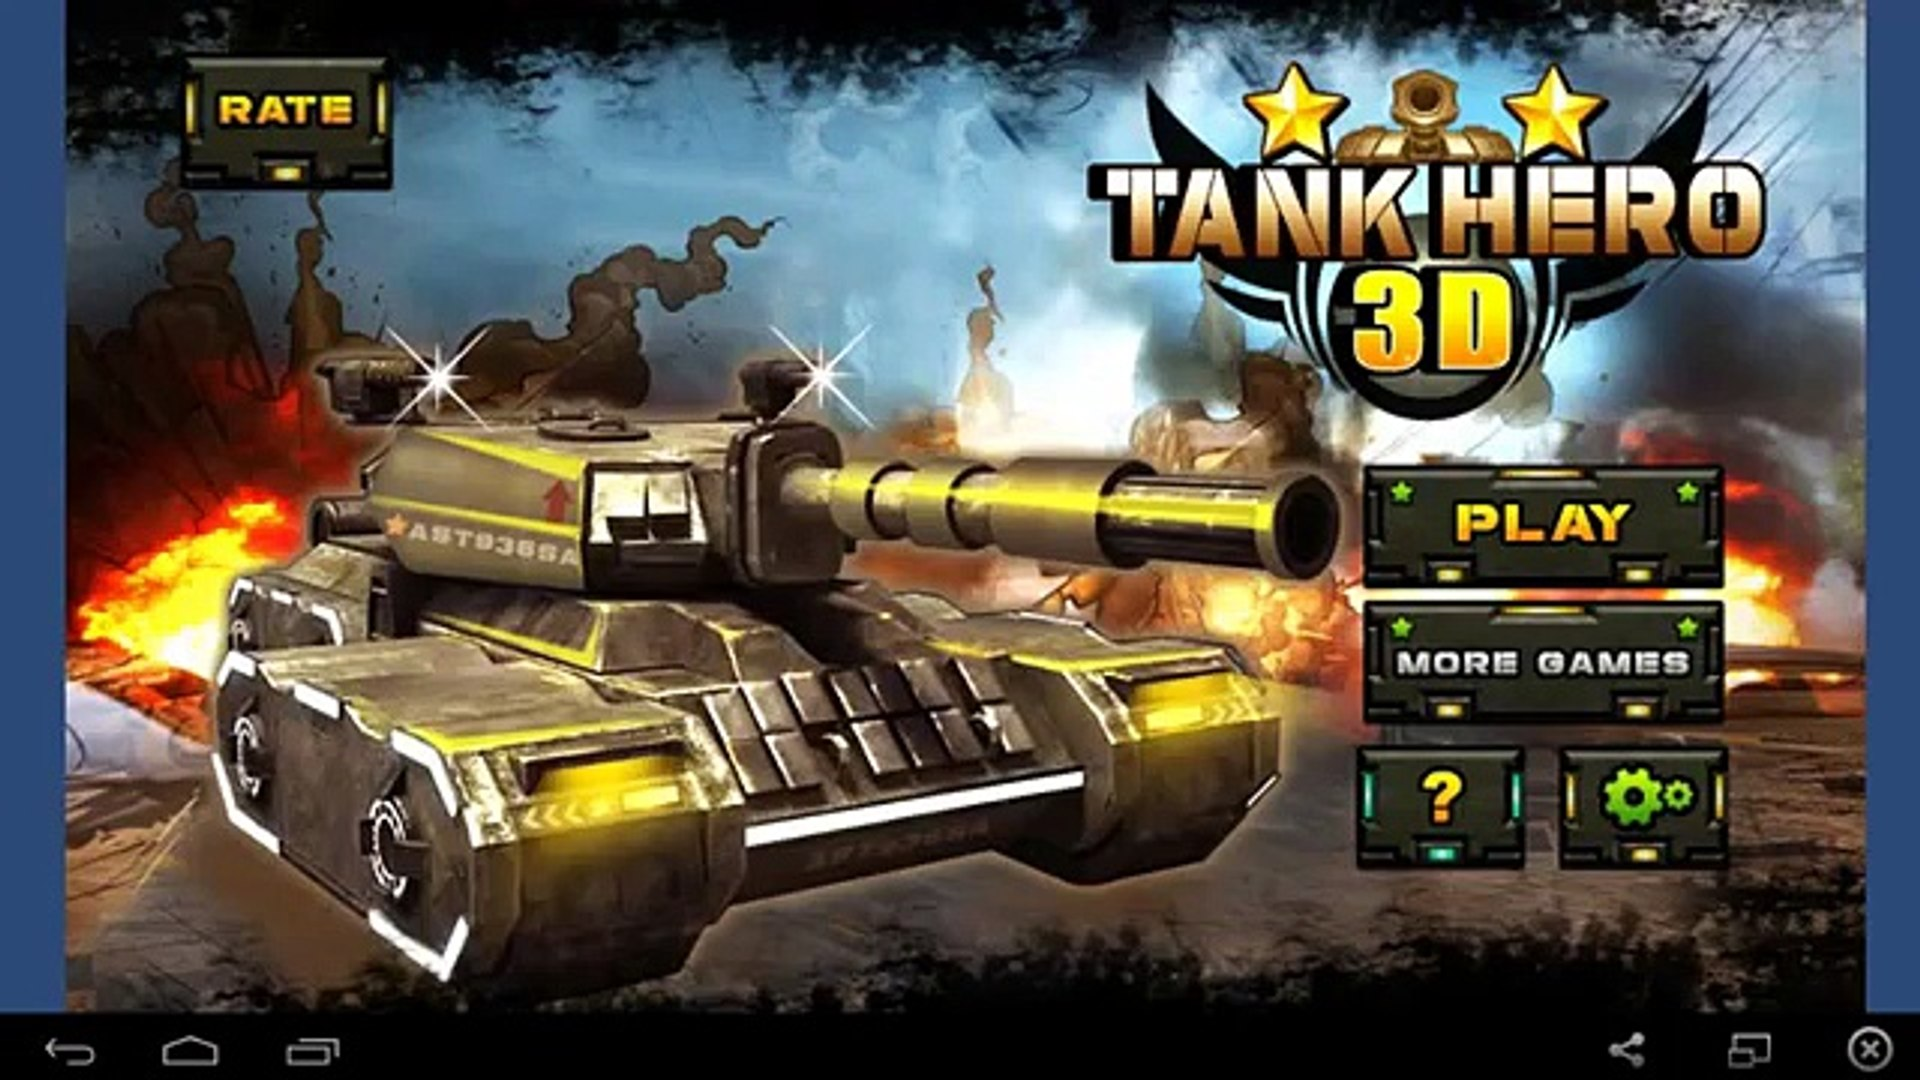 Tank Hero 3D - for Android GamePlay